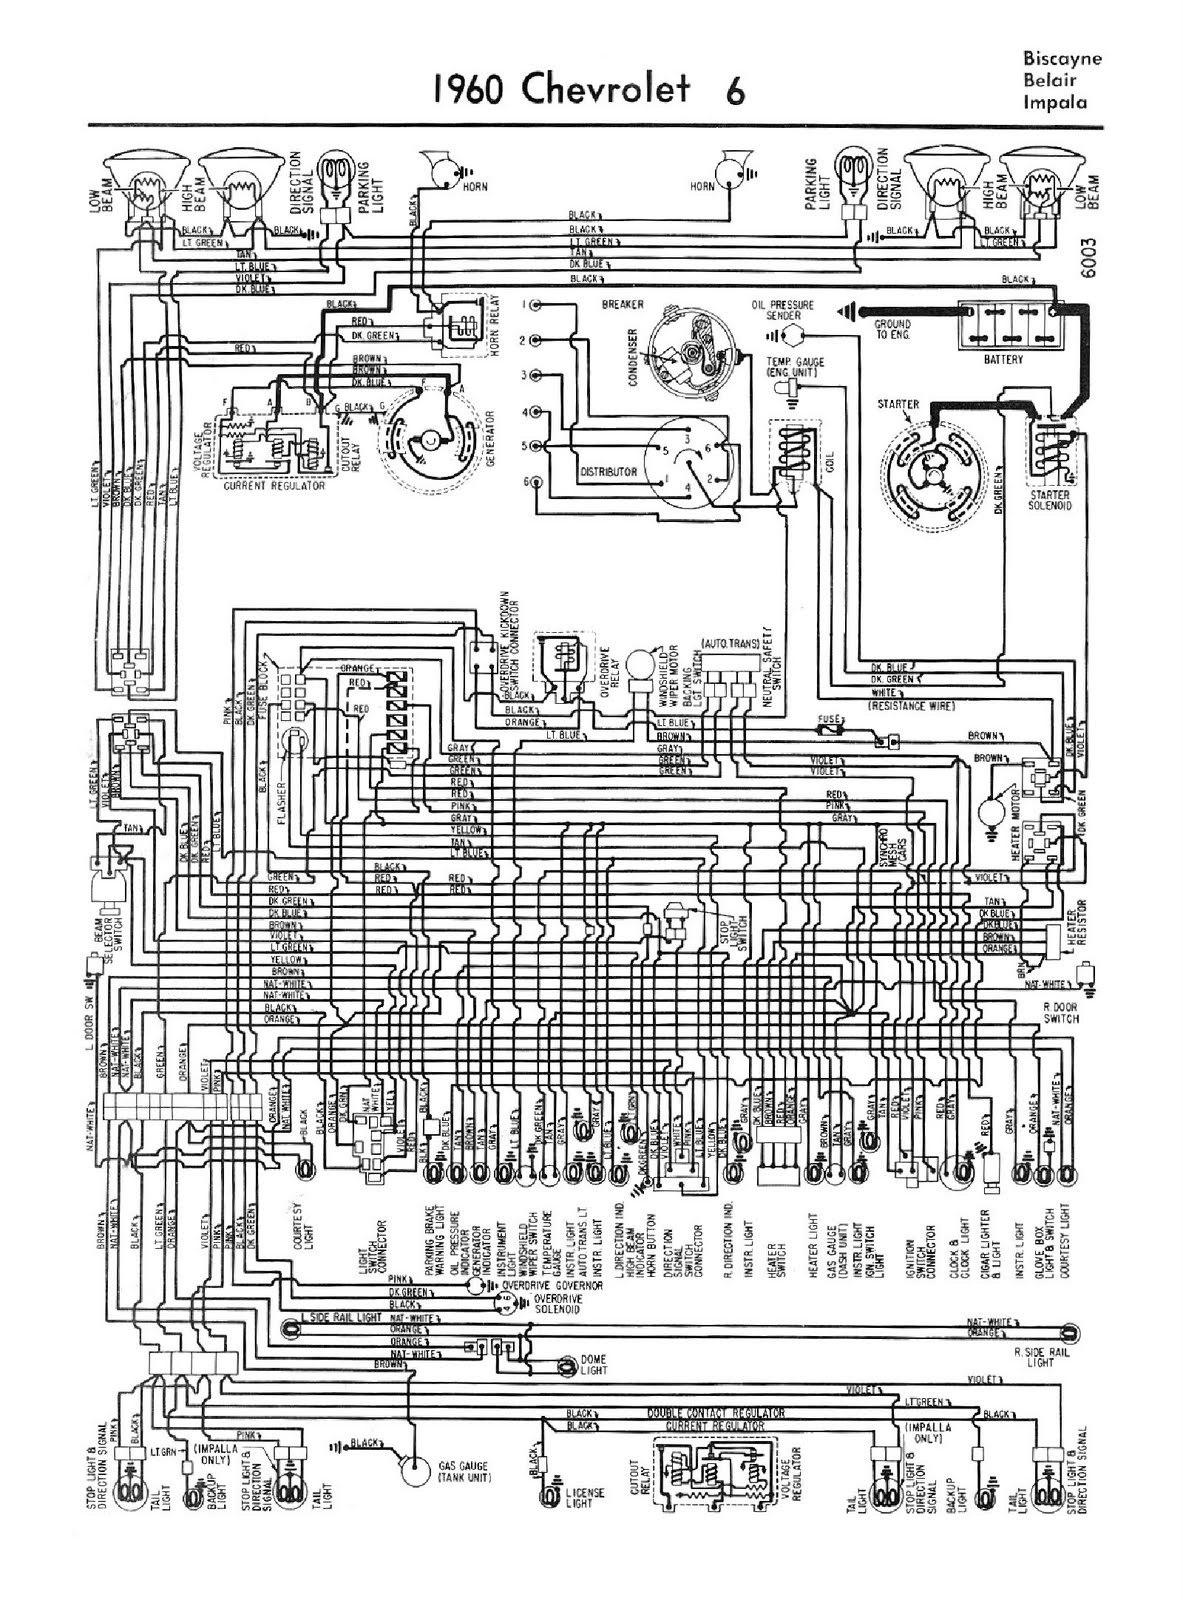 medium resolution of free auto wiring diagram 1960 chevrolet v6 biscayne belair and impala wiring diagram 97 cadillac deville